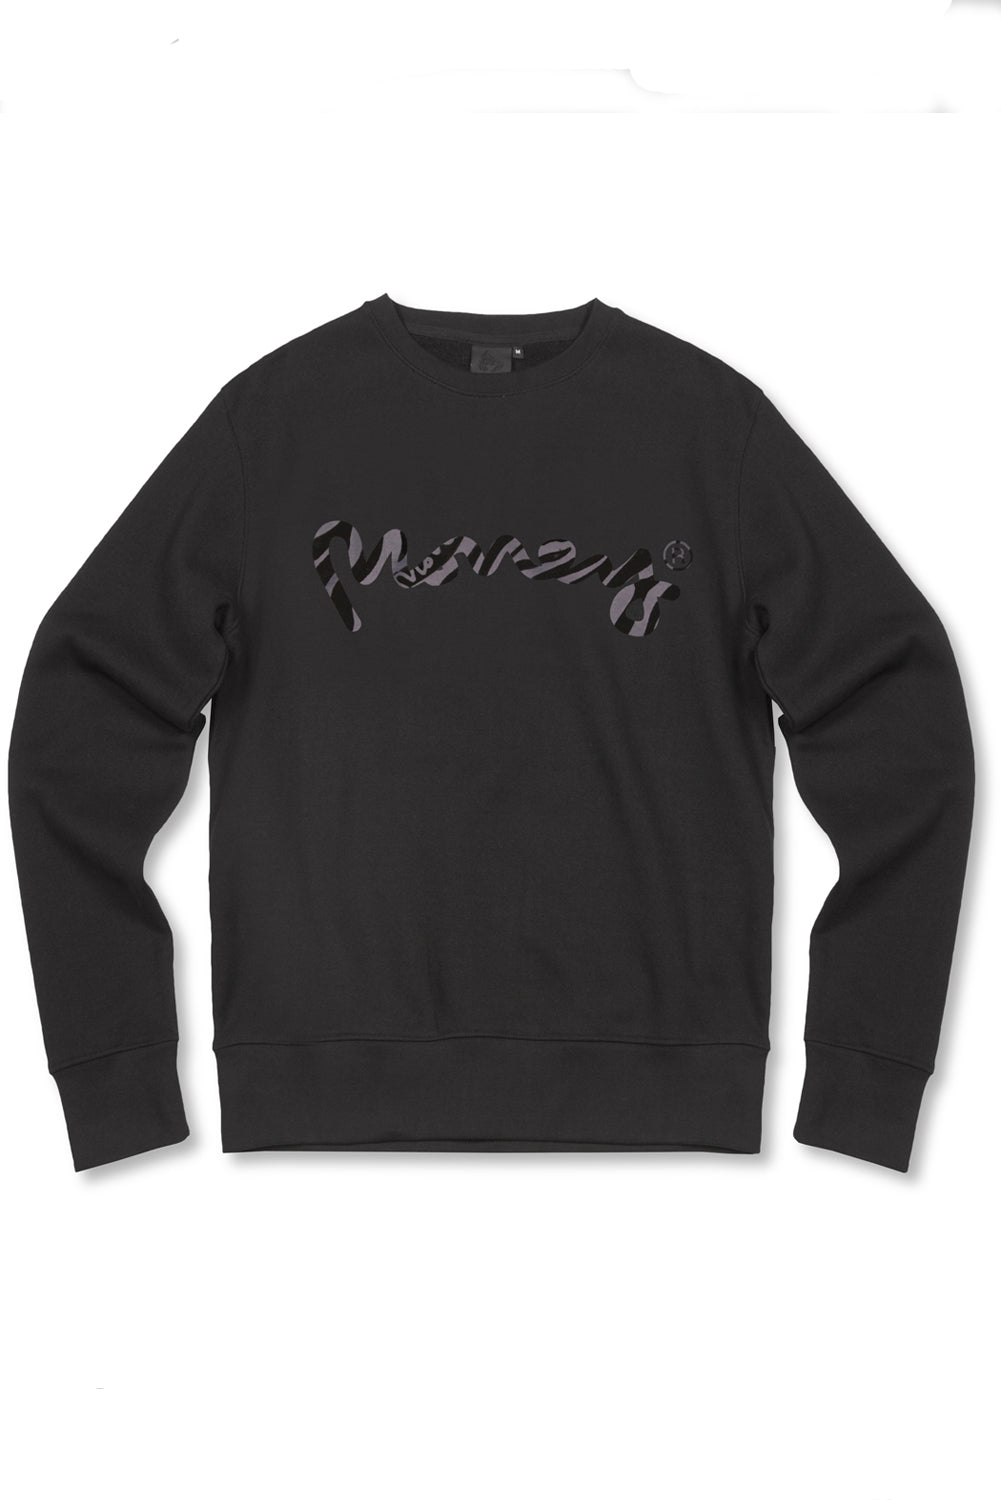 Money Zebra Sig Ape Sweater - Black